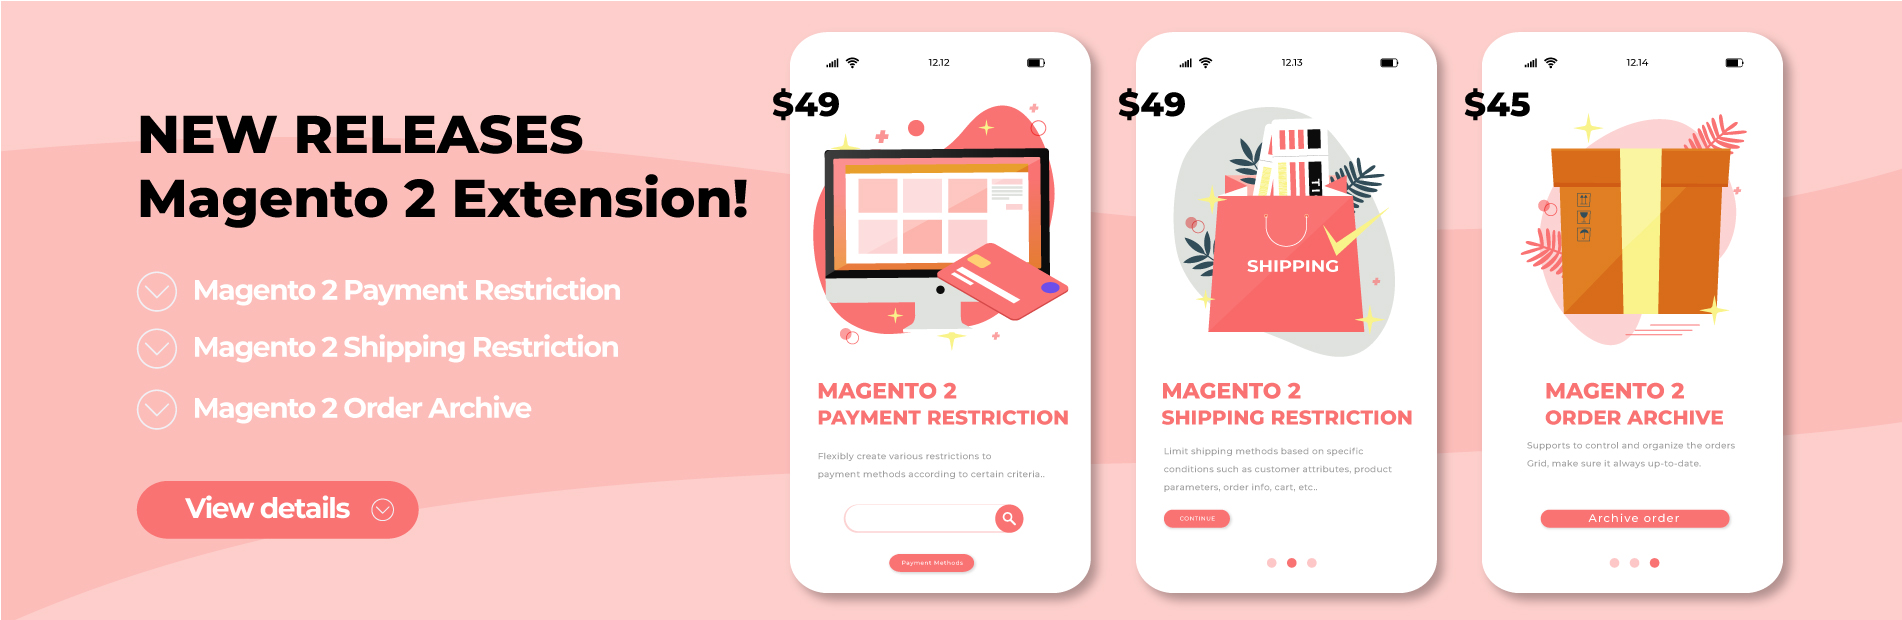 New Releaes Magento 2 Extensions